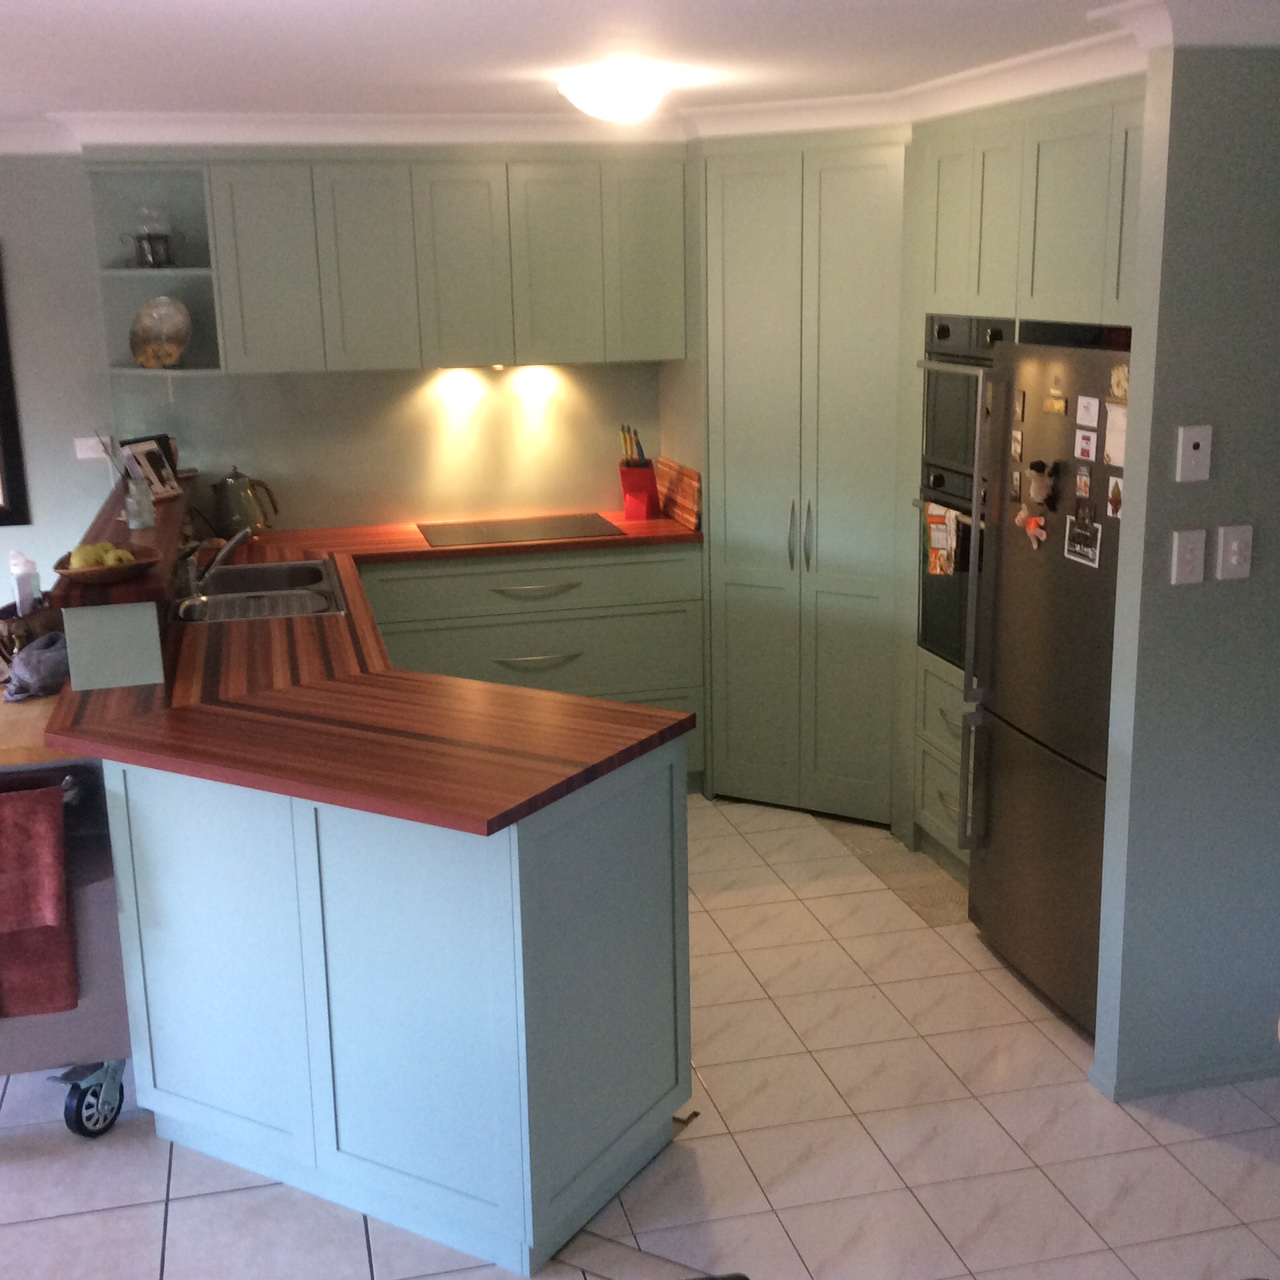 Troy Roberts - products. kitchen cabinets 5th image